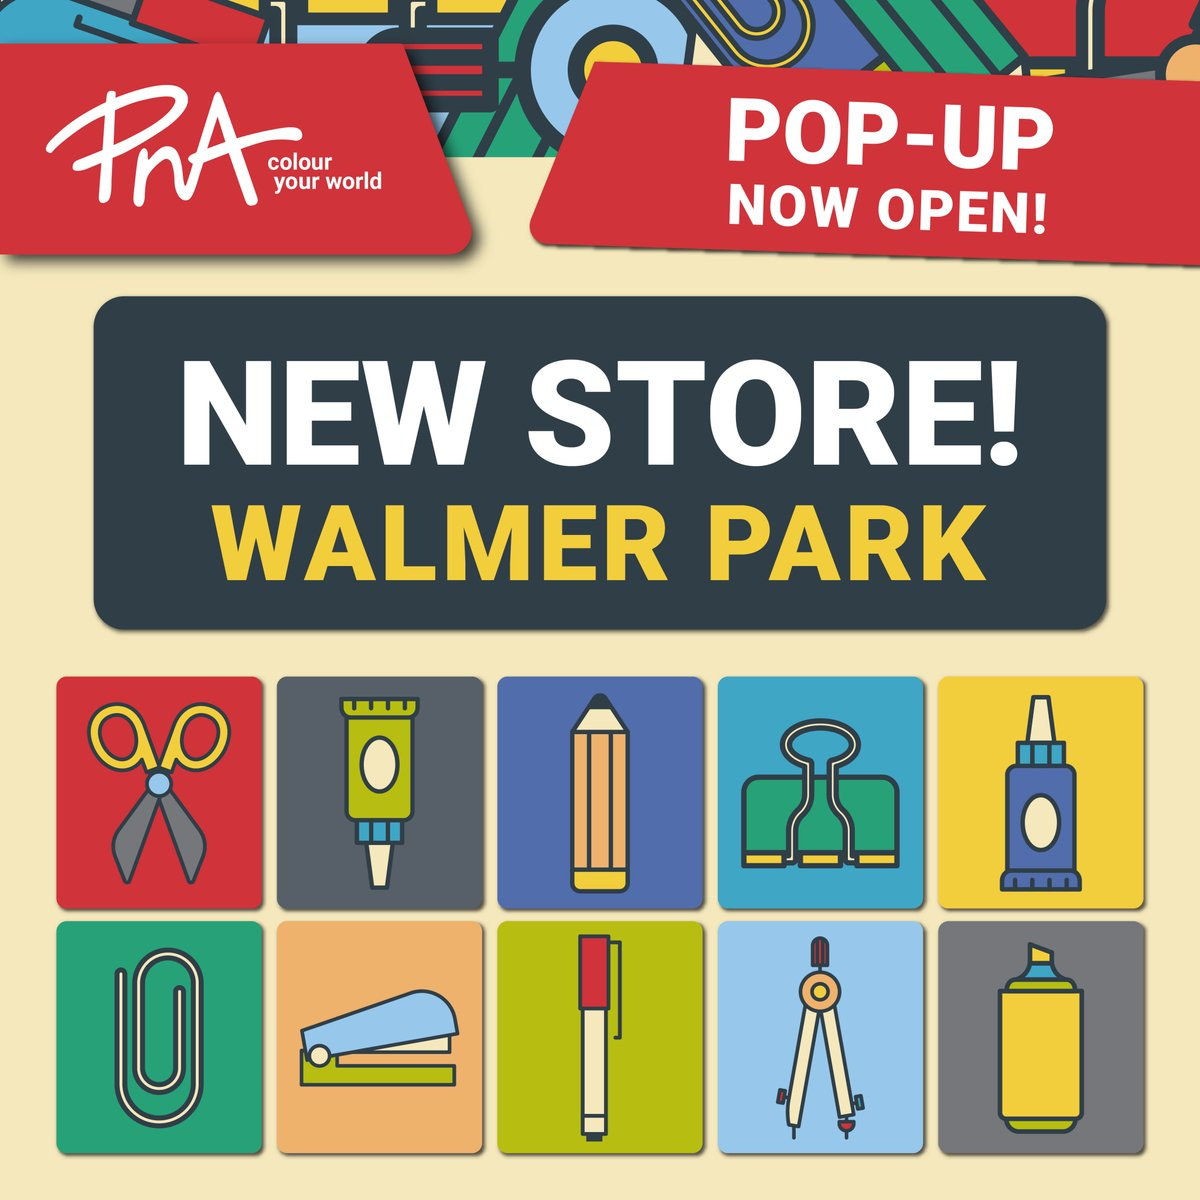 PNA On Twitter Pop Up Store NOW OPEN In Walmer Park Shopping